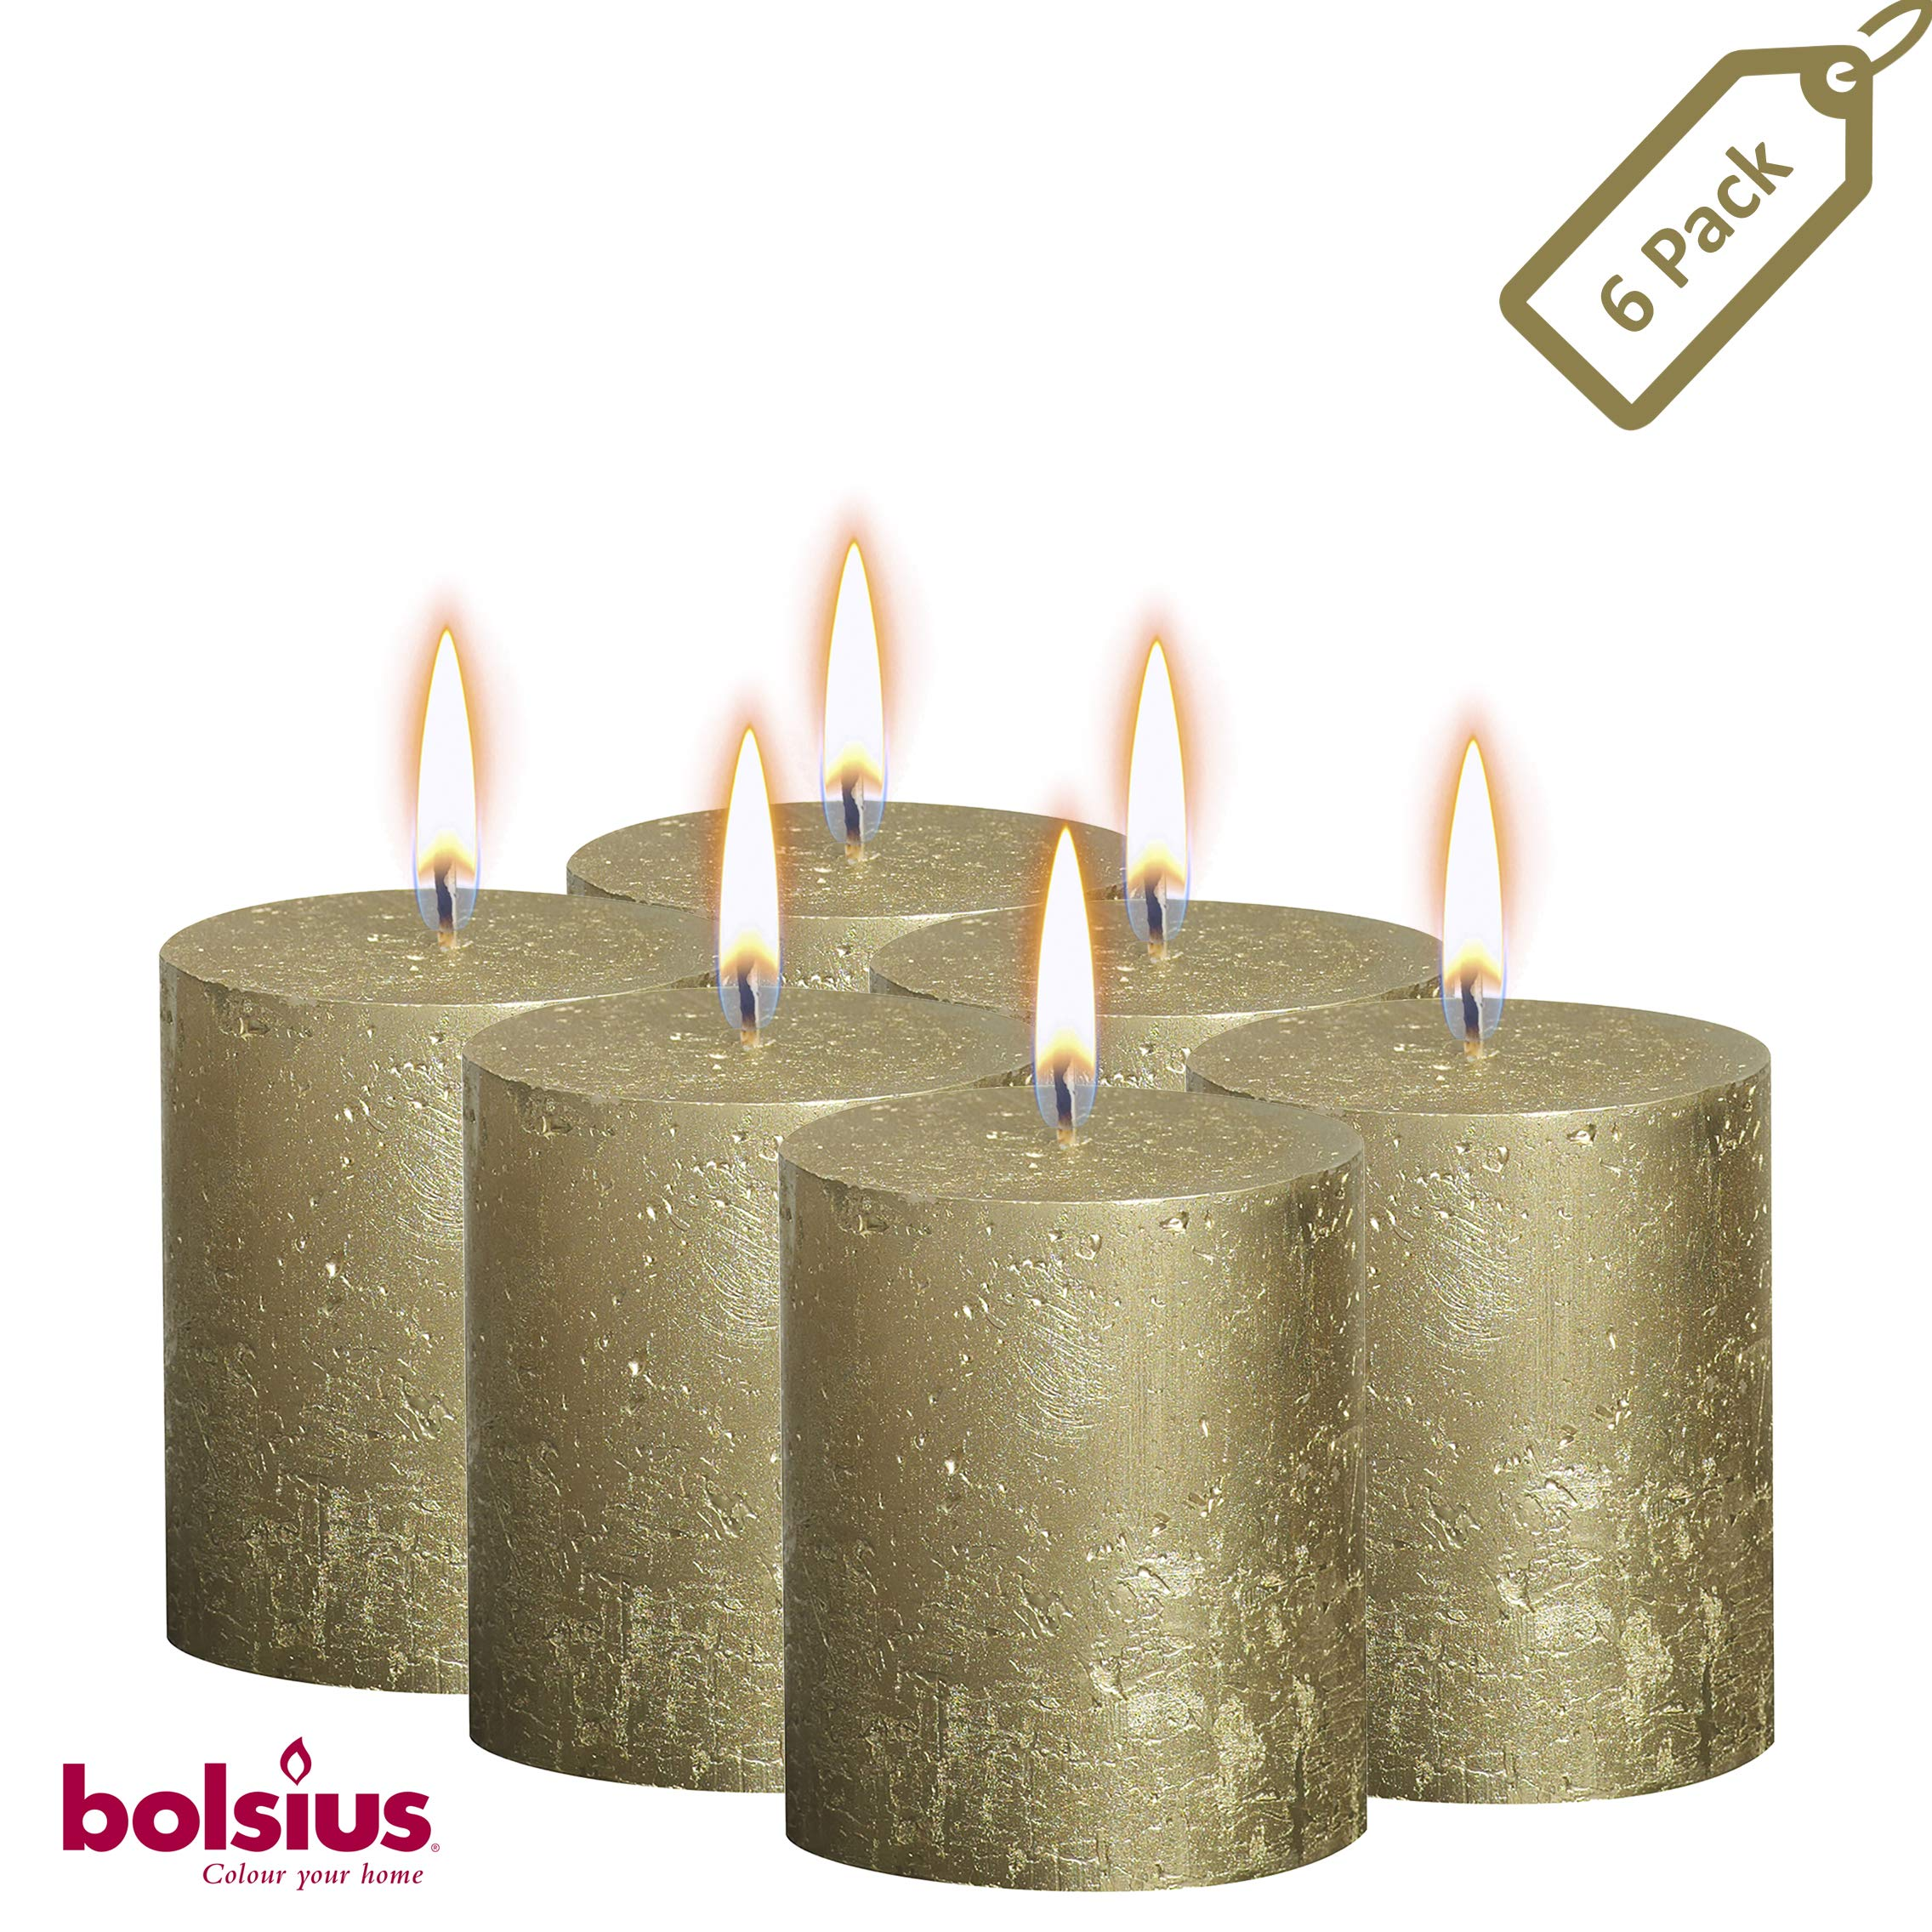 BOLSIUS Rustic Full Metallic Gold Candles – Set of 6 Unscented Pillar Candles – Gold Candles with a Full Metallic Coat – Slow Burning – Perfect Décor Candle – 80/68m 3.25X 2.75 Inches